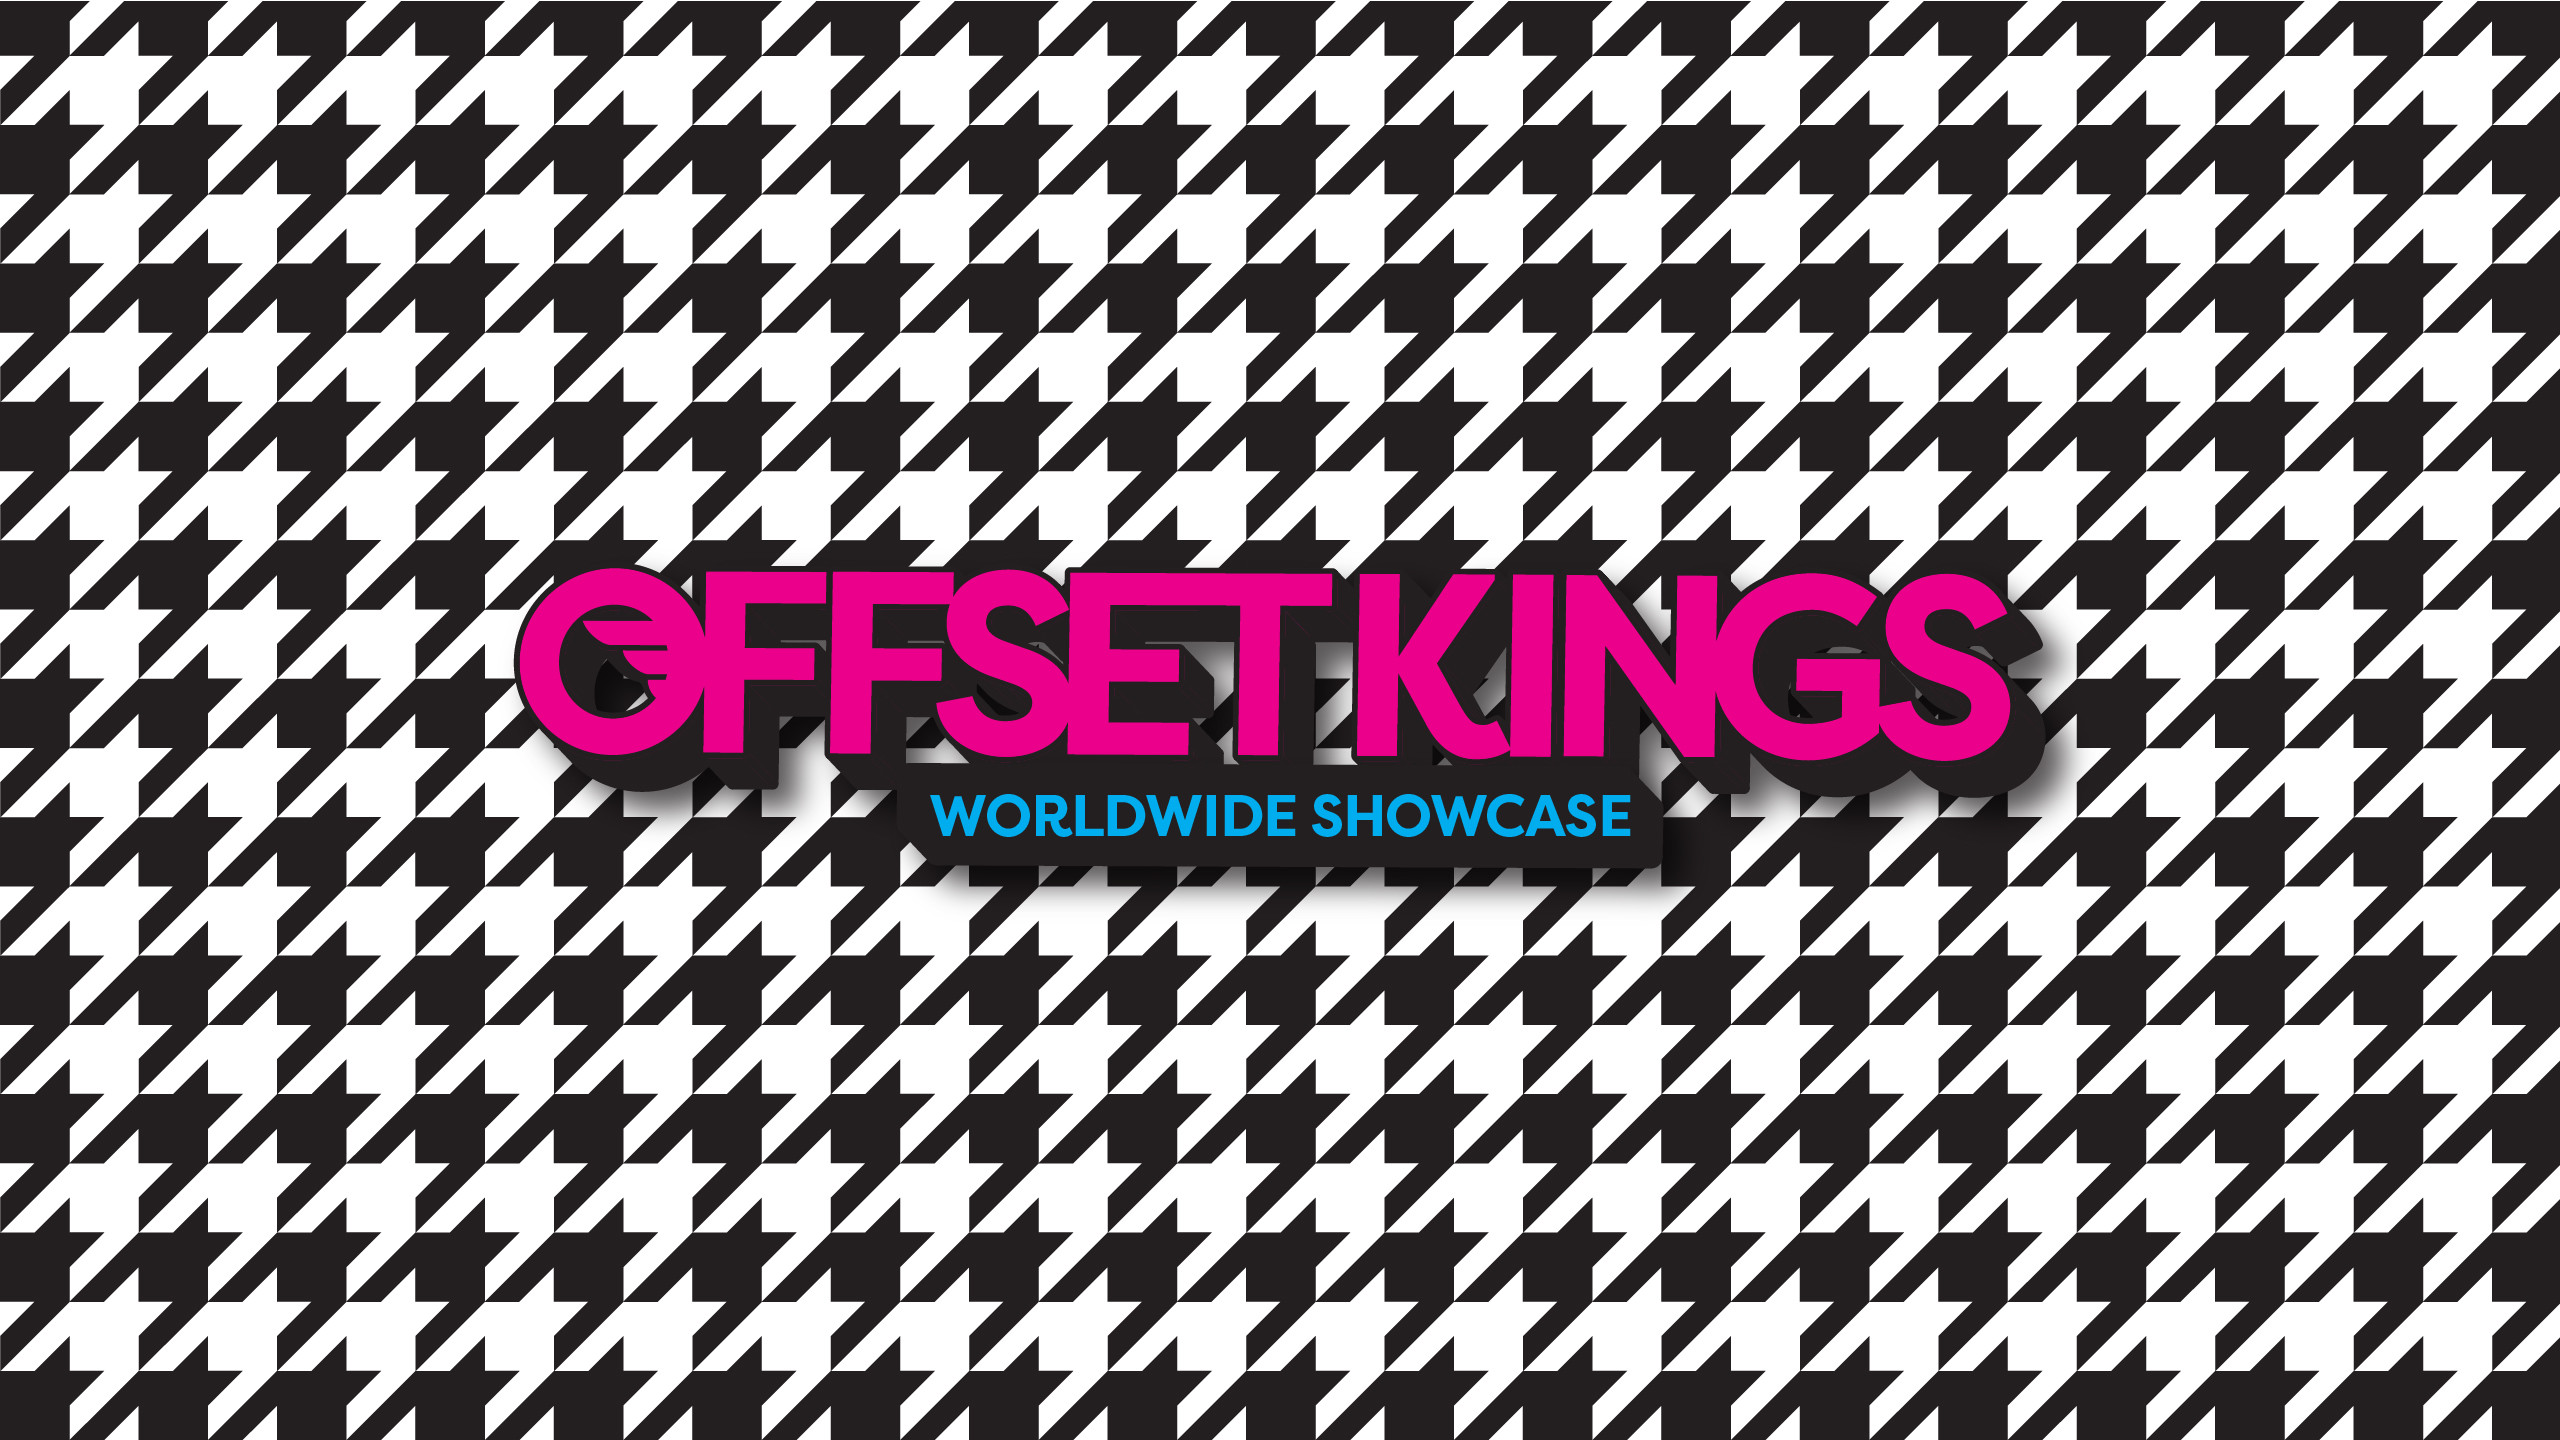 2560x1440 Wallpaper Wednesday: Offset Kings Throwback